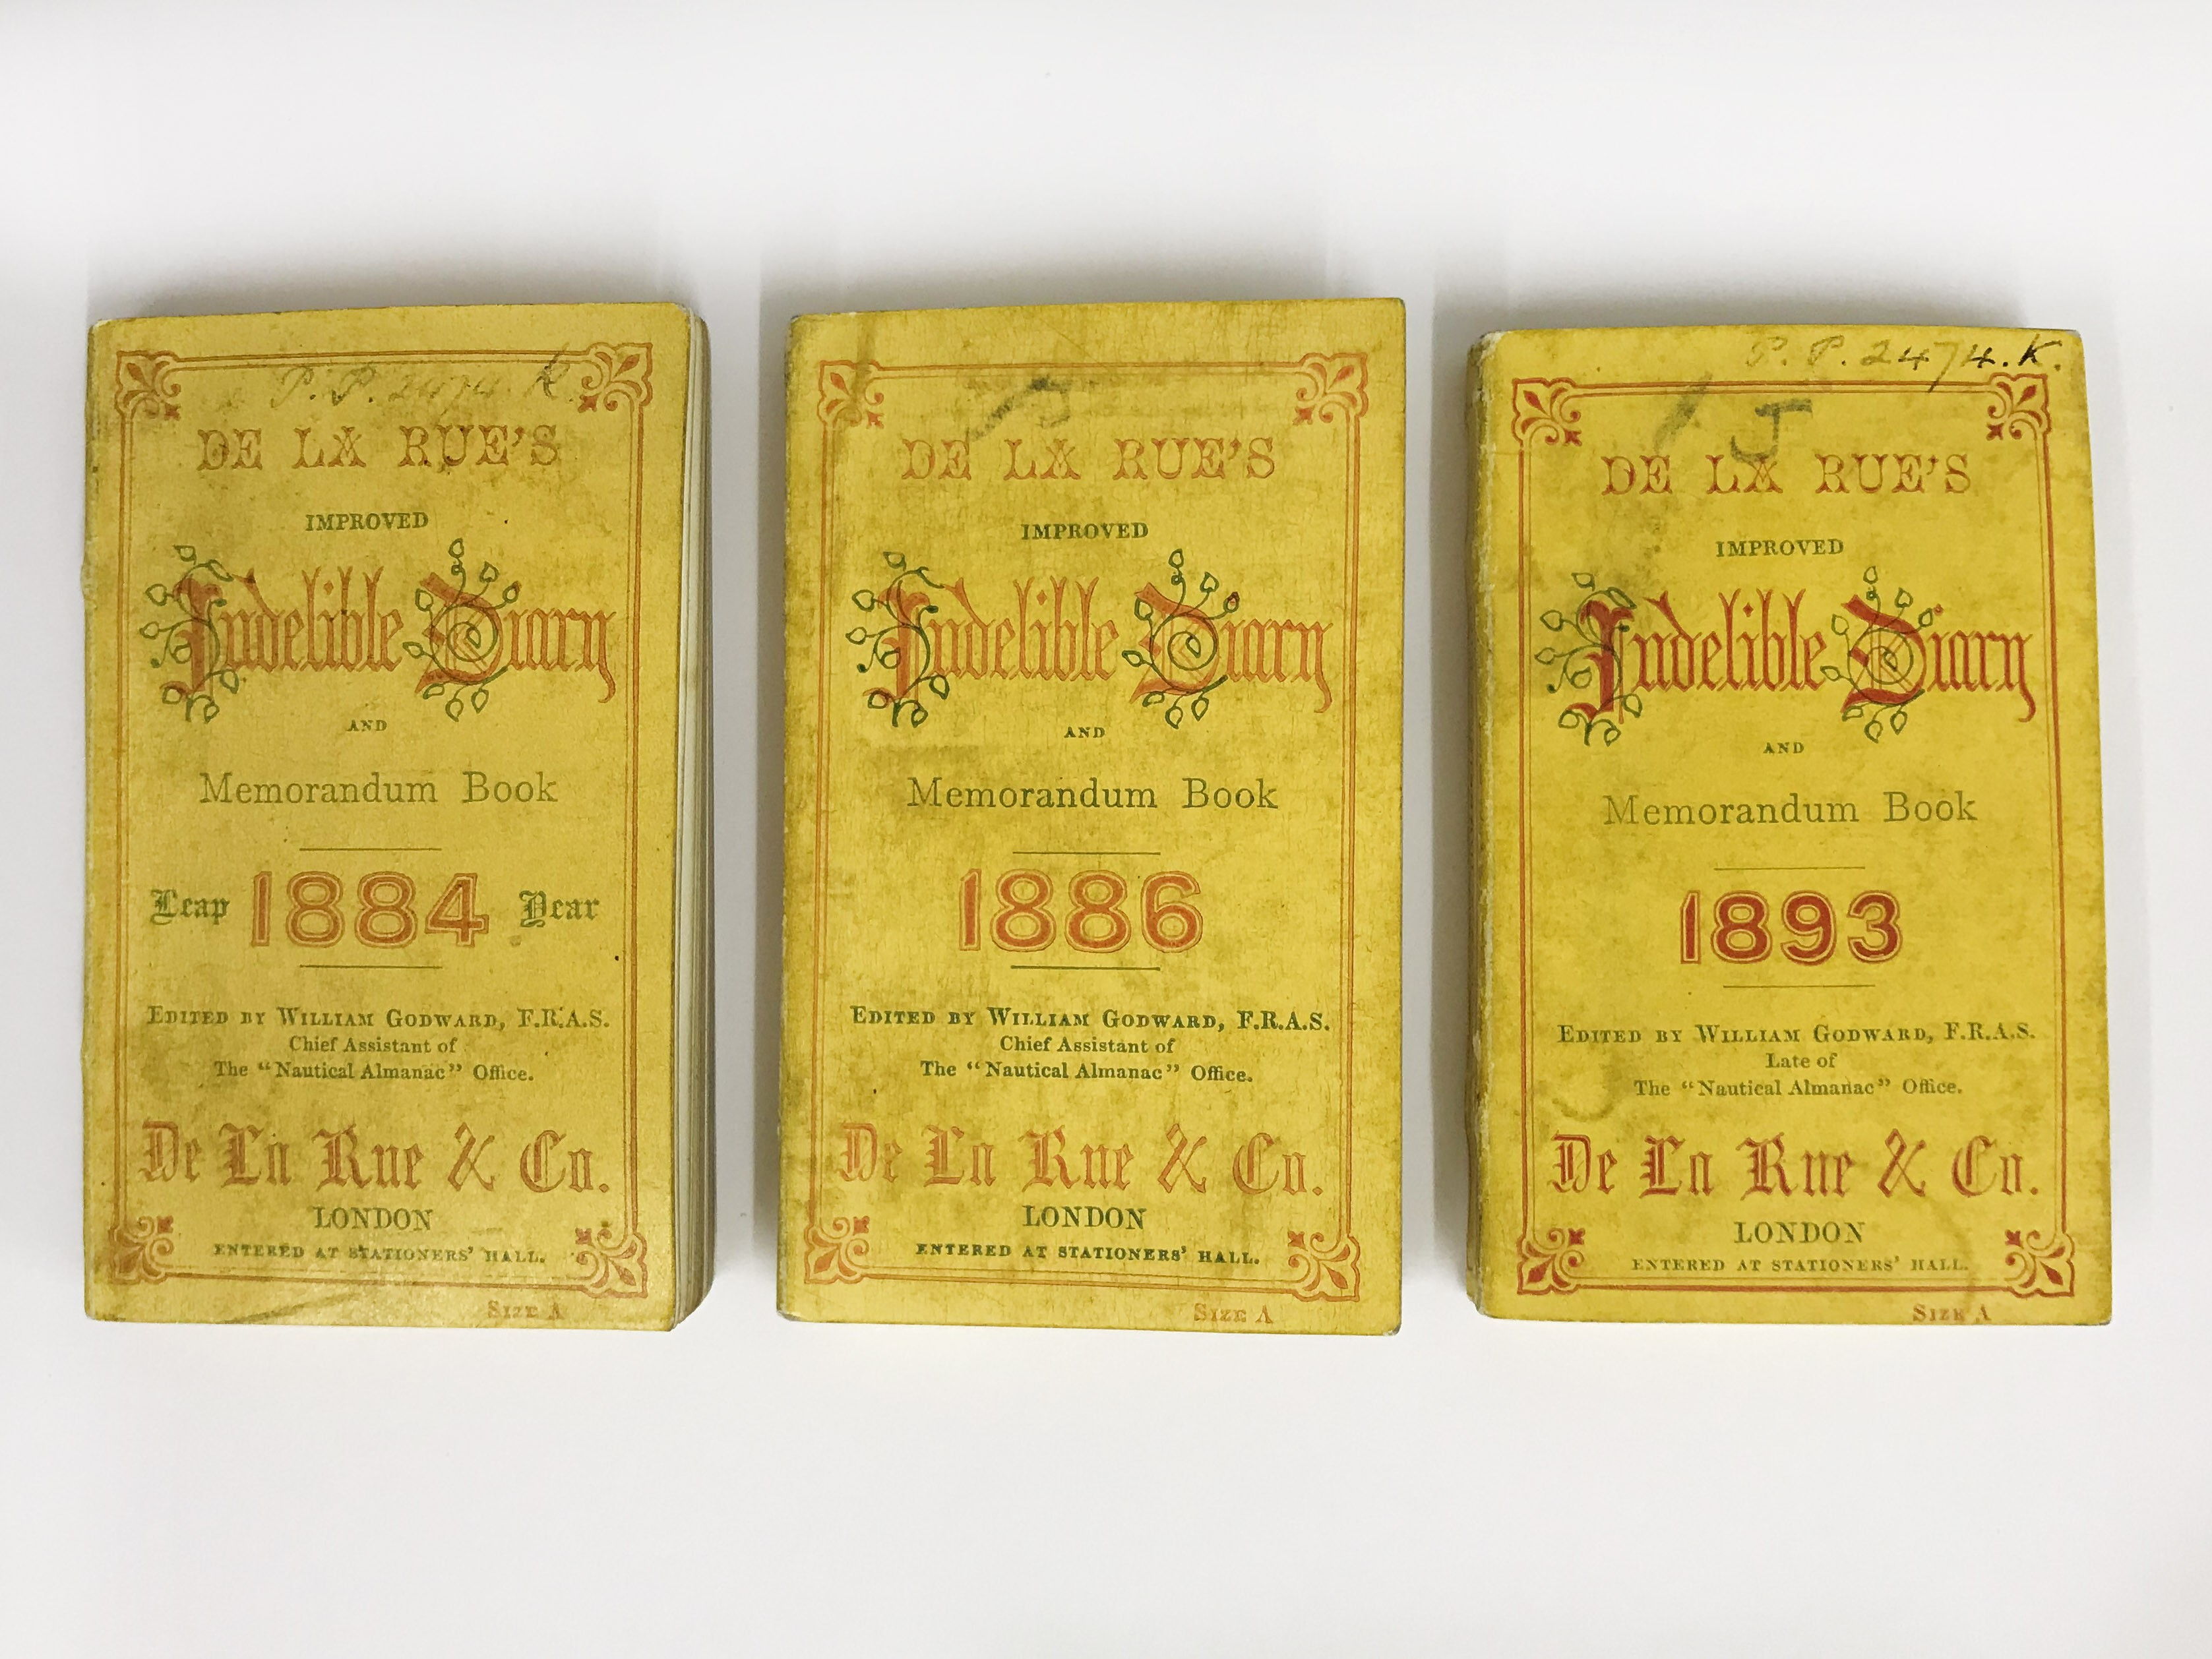 Lot 22 - MINIATURE DE LA RUE'S IMPROVED INDELIBLE DIARY AND MEMORANDUM BOOK FOR 1884, 1886 AND 1893